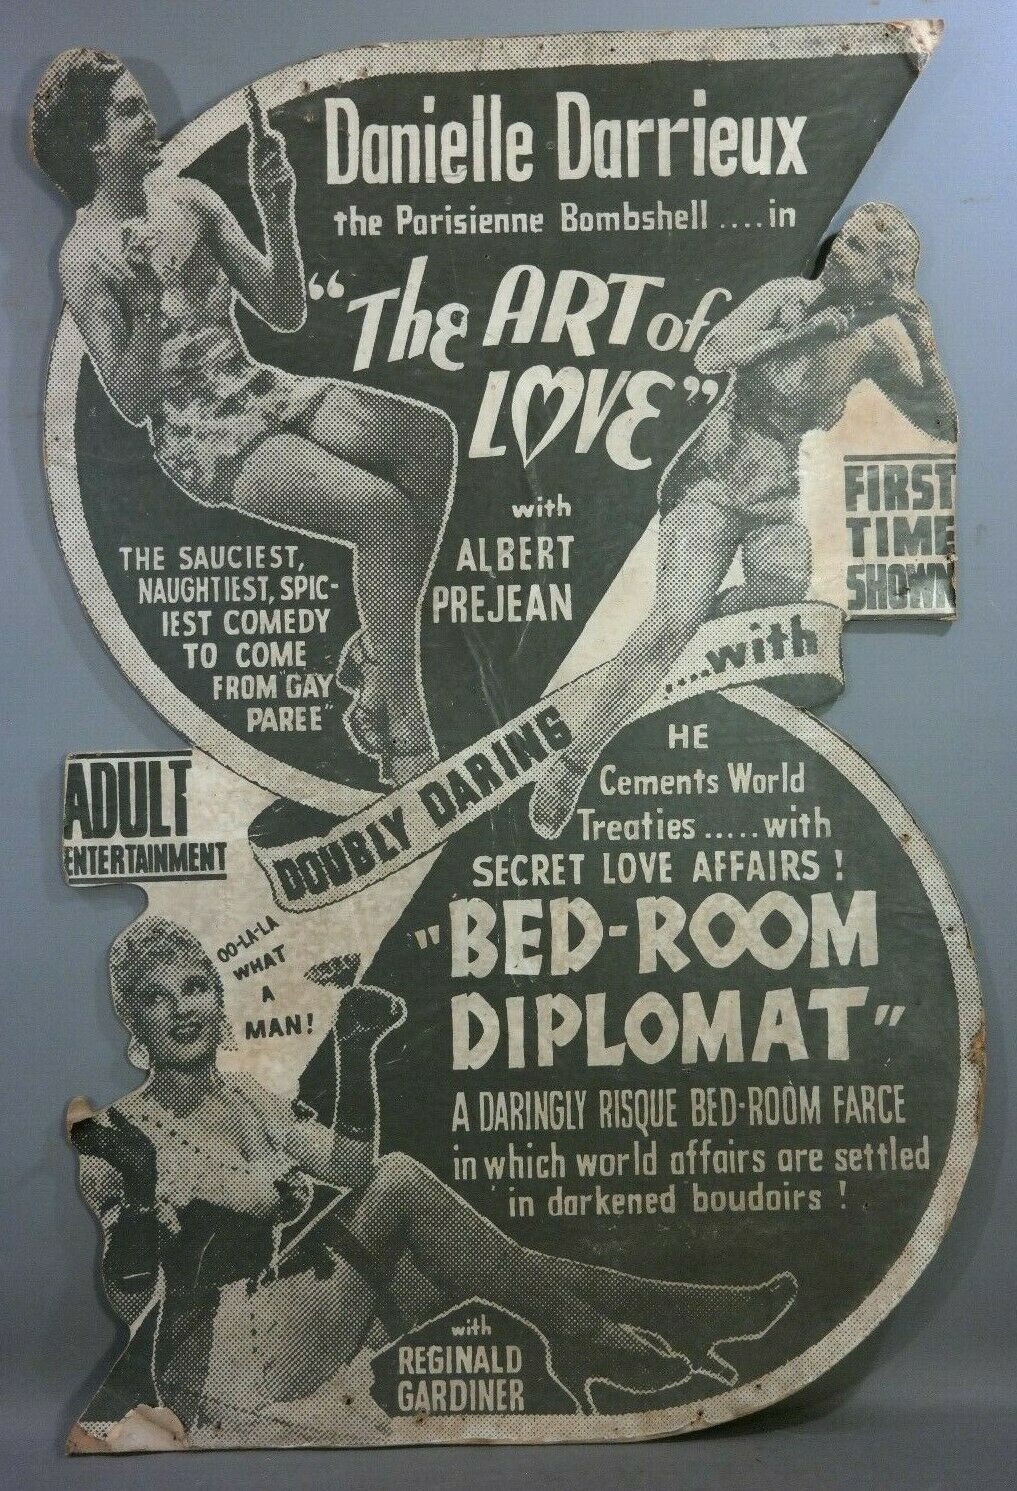 art of love - bedroom diplomat